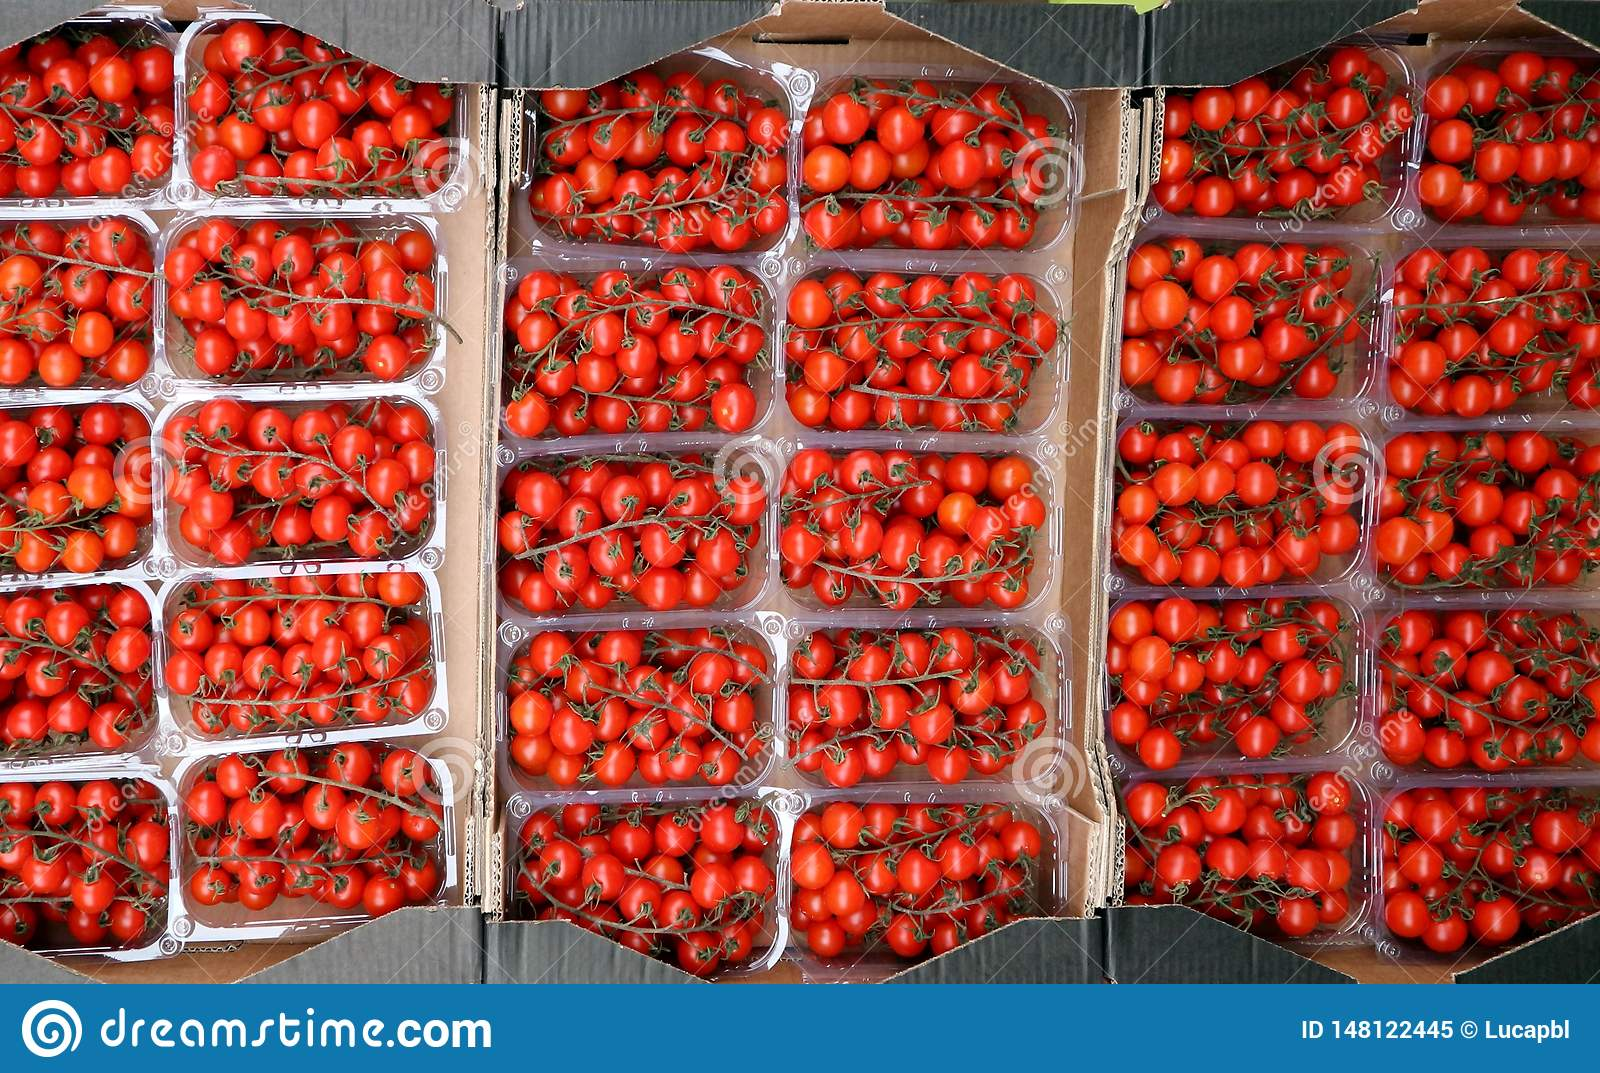 Top view of several plastic containers full of cherry tomatoes, at the vegetable market